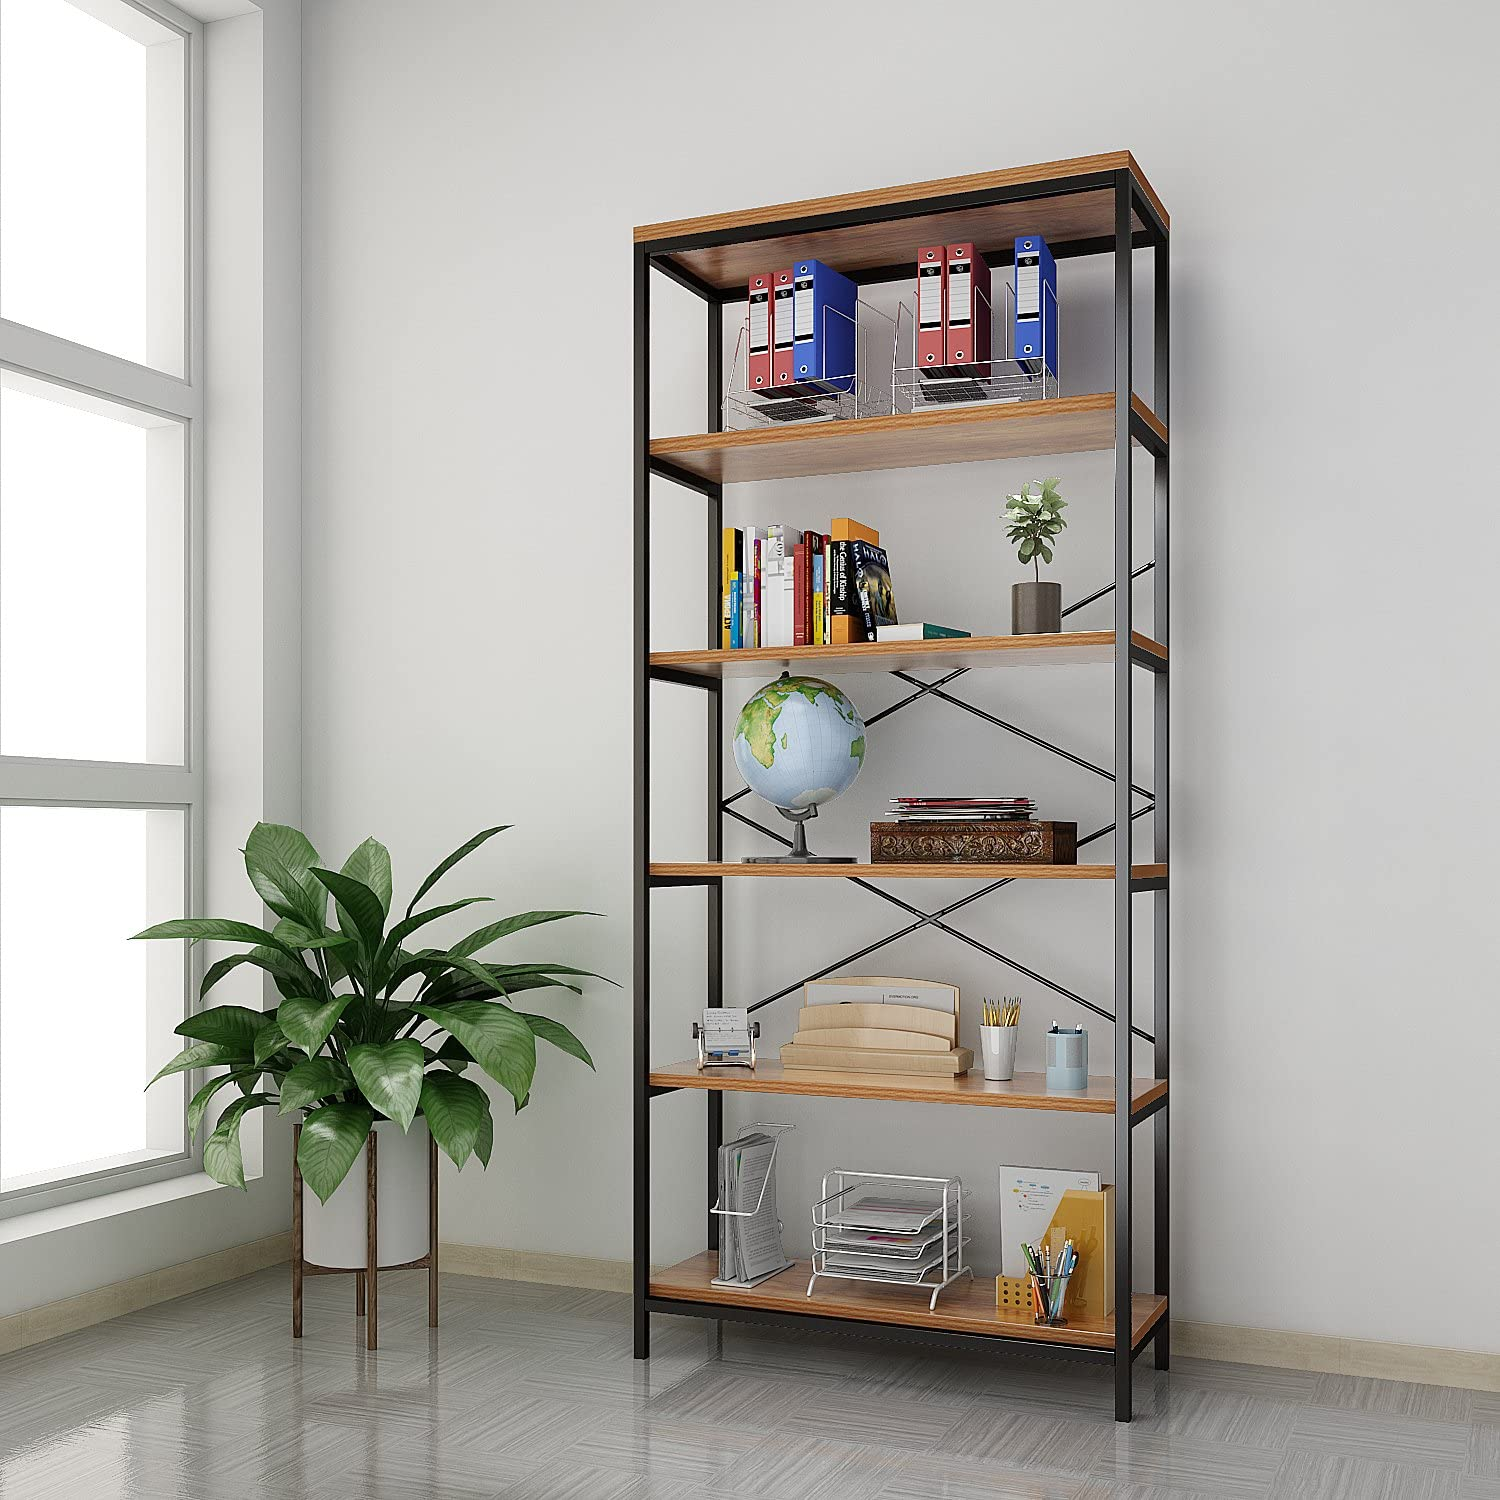 Kemanner 5-Tier Industrial Style Bookcase, Vintage Free Standing Bookshelf, Rustic Wood Bookcases Furniture (Brown-1)